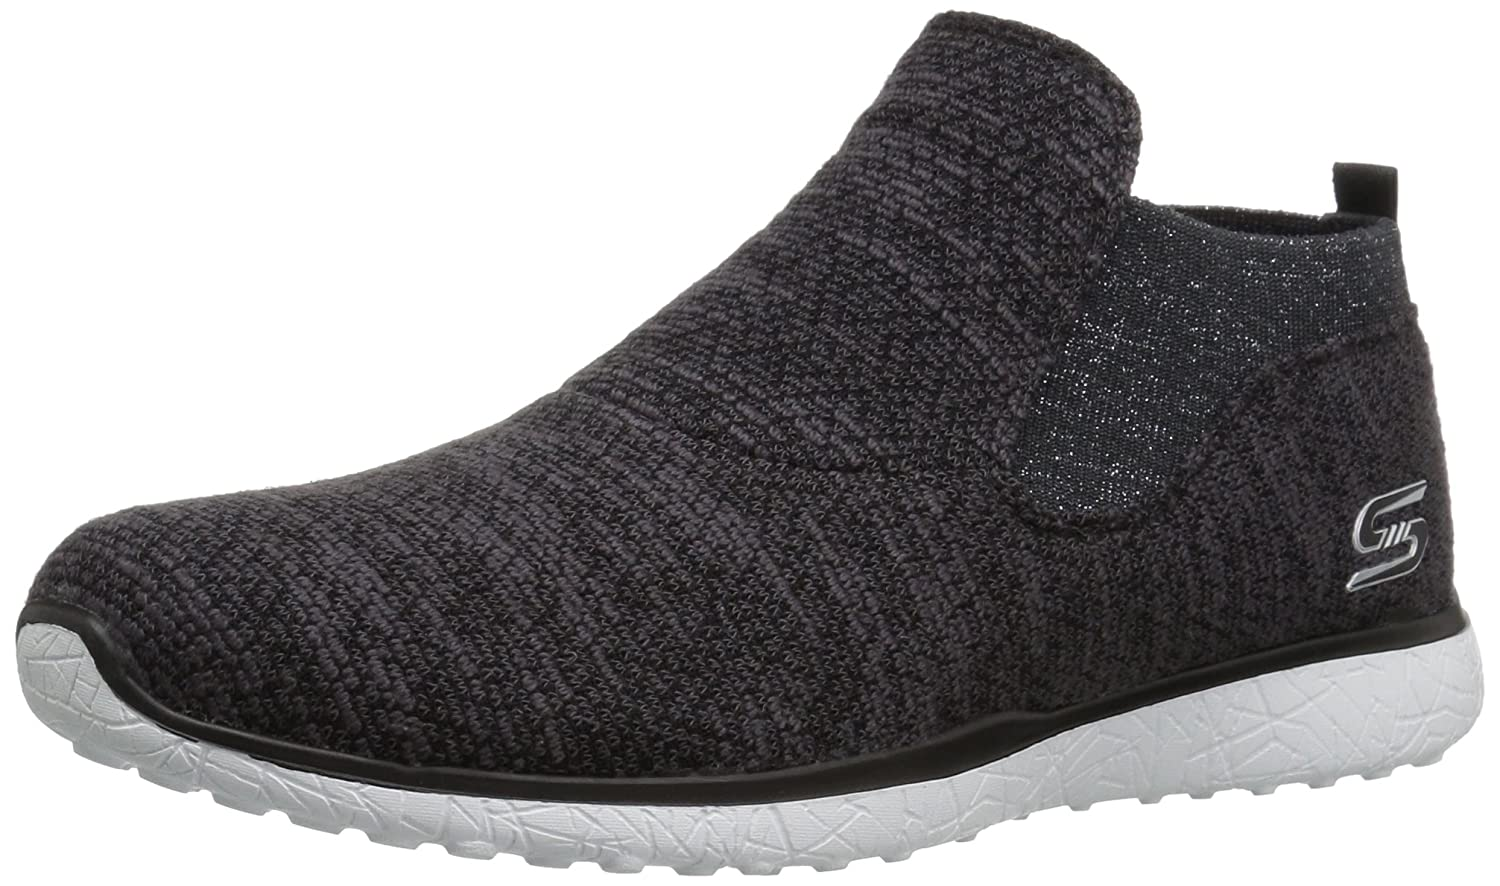 Skechers Sport Women's Microburst Supersonic Fashion Sneaker B01LY508UD 9.5 B(M) US|Black/White